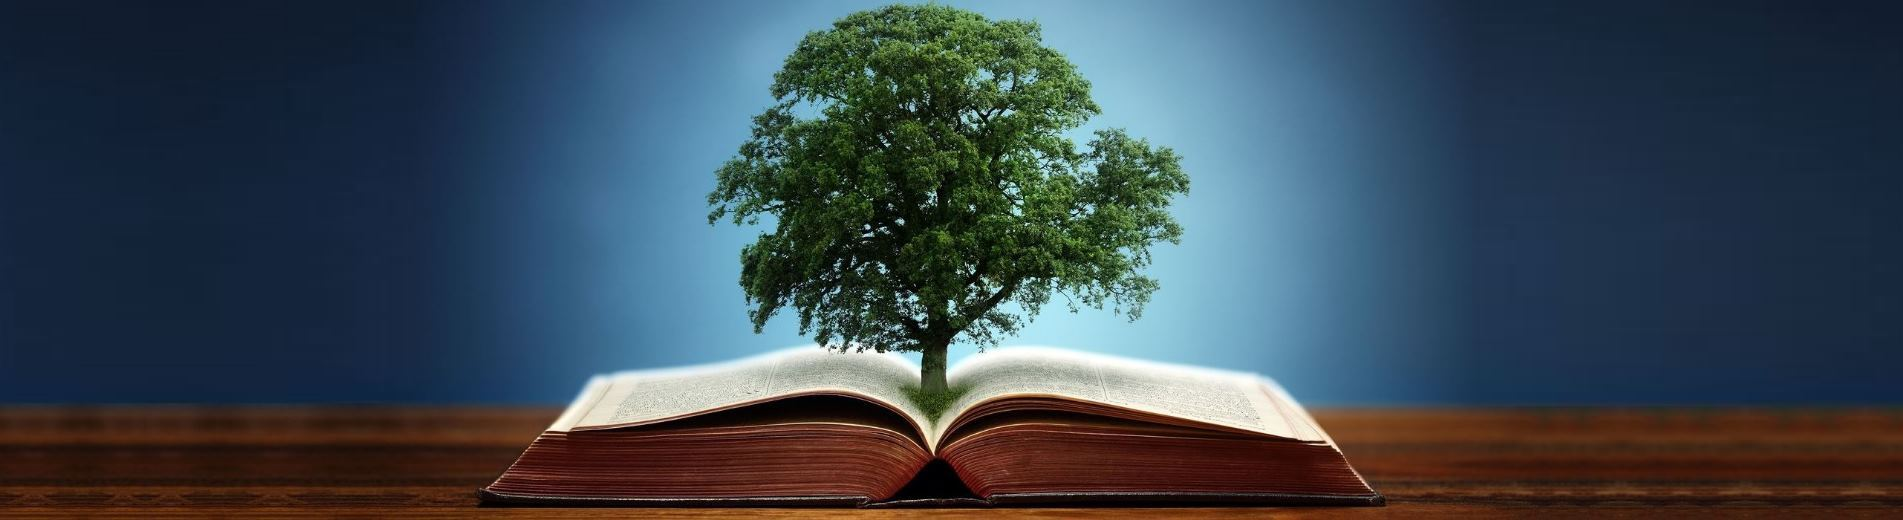 bigstock-Book-or-tree-of-knowledge-conc-79293445